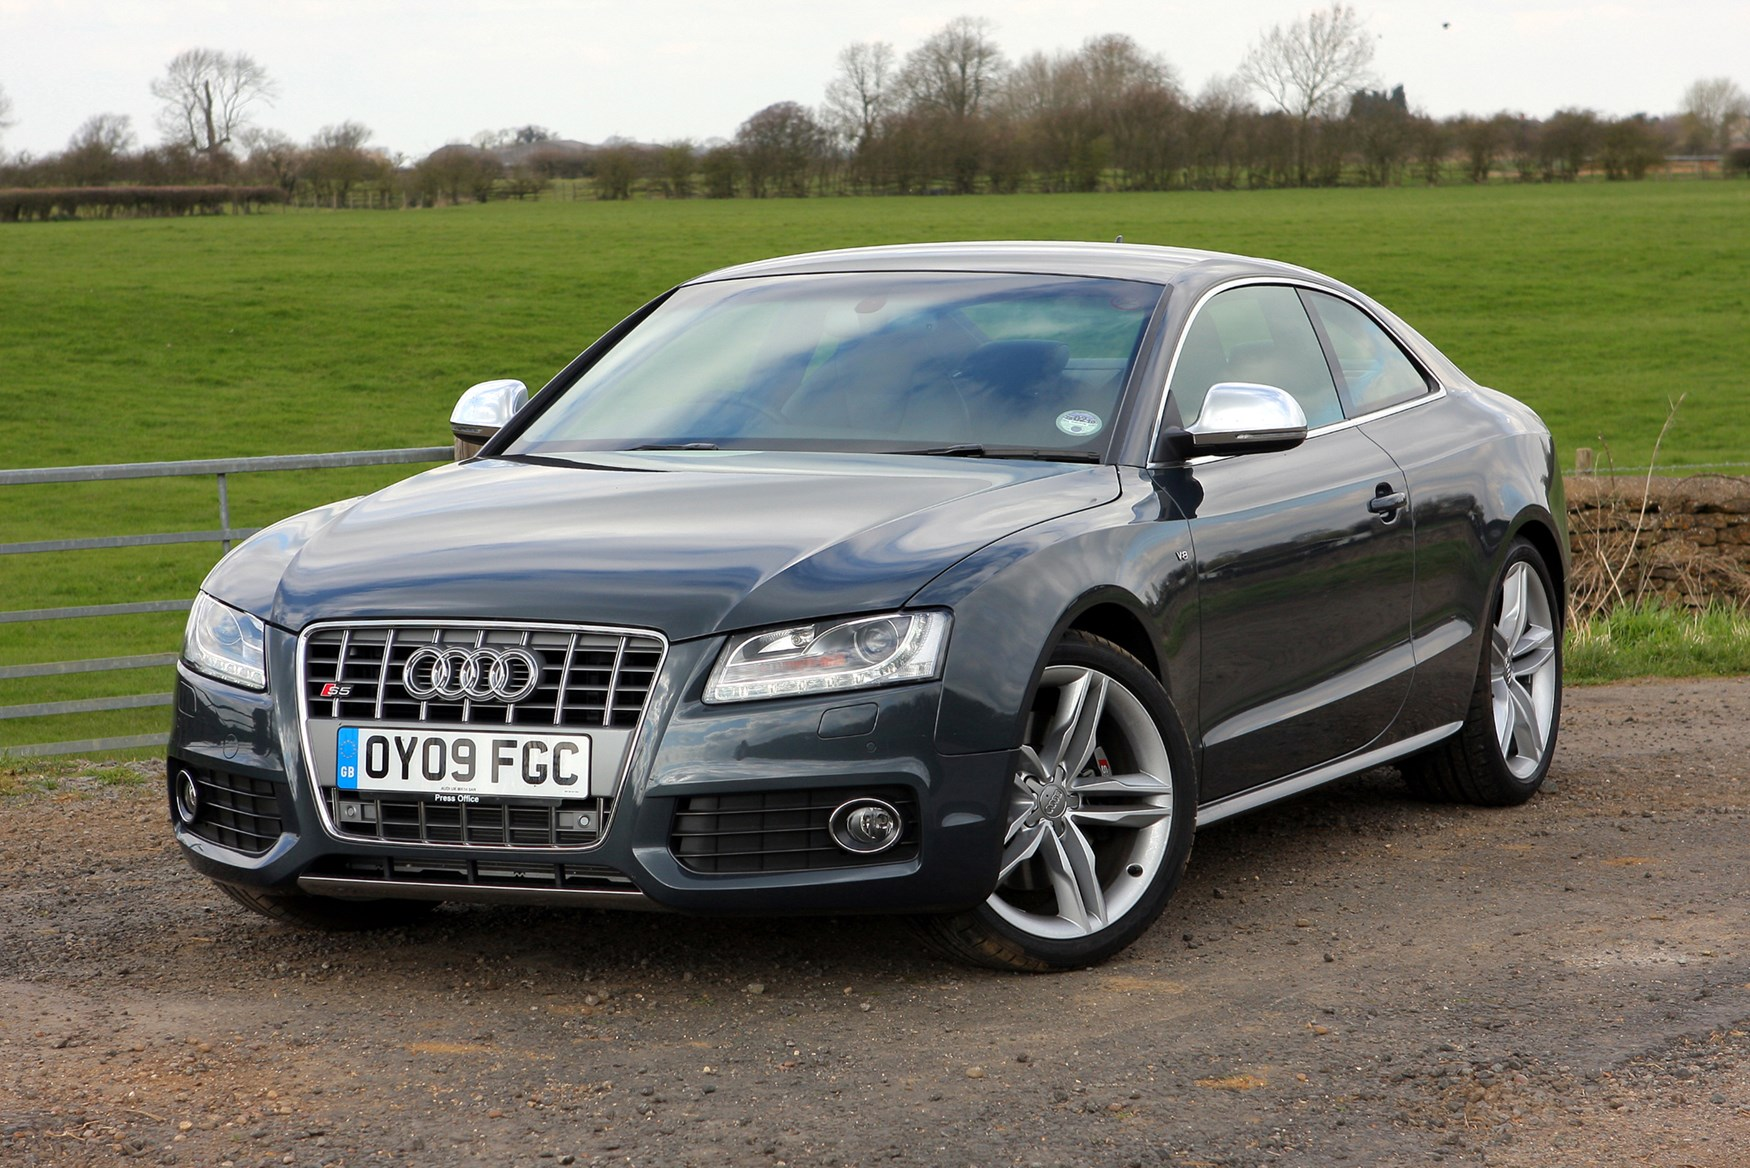 Audi Lease Agreement >> Audi A5 For Sale Used Audi A5 Cars Parkers | Upcomingcarshq.com